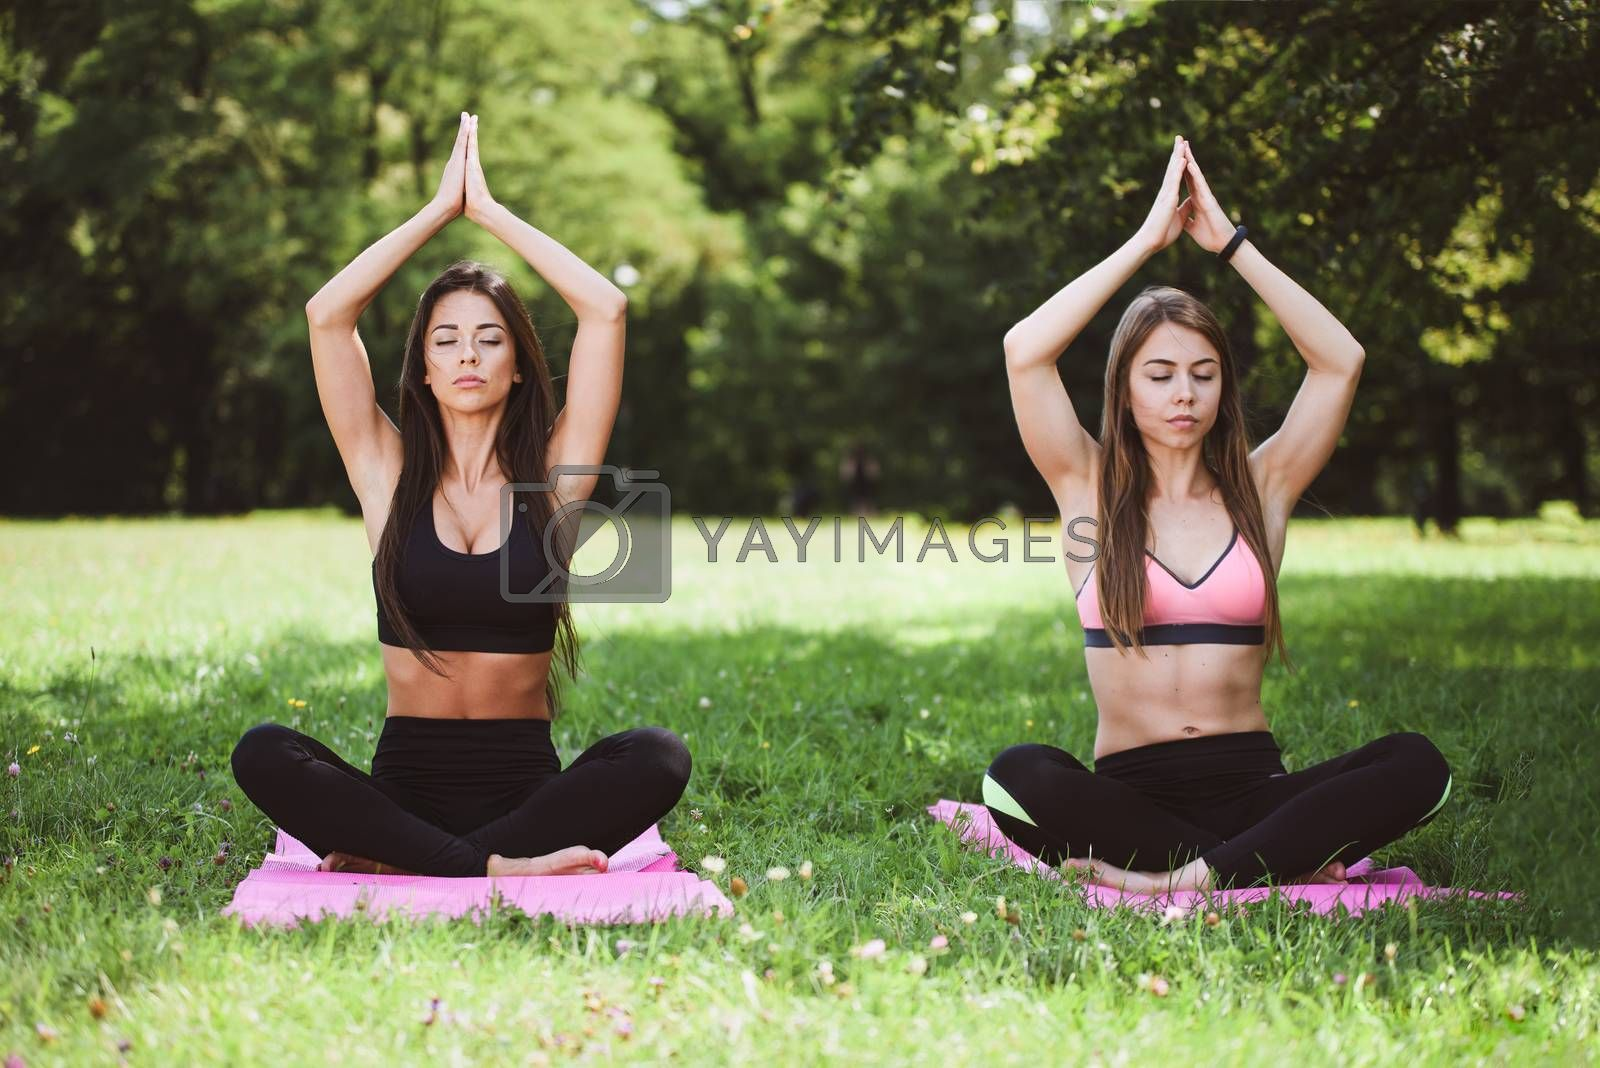 Two women doing yoga meditation in a lotus pose outdoors in a park on a sunny day (vintage effect)